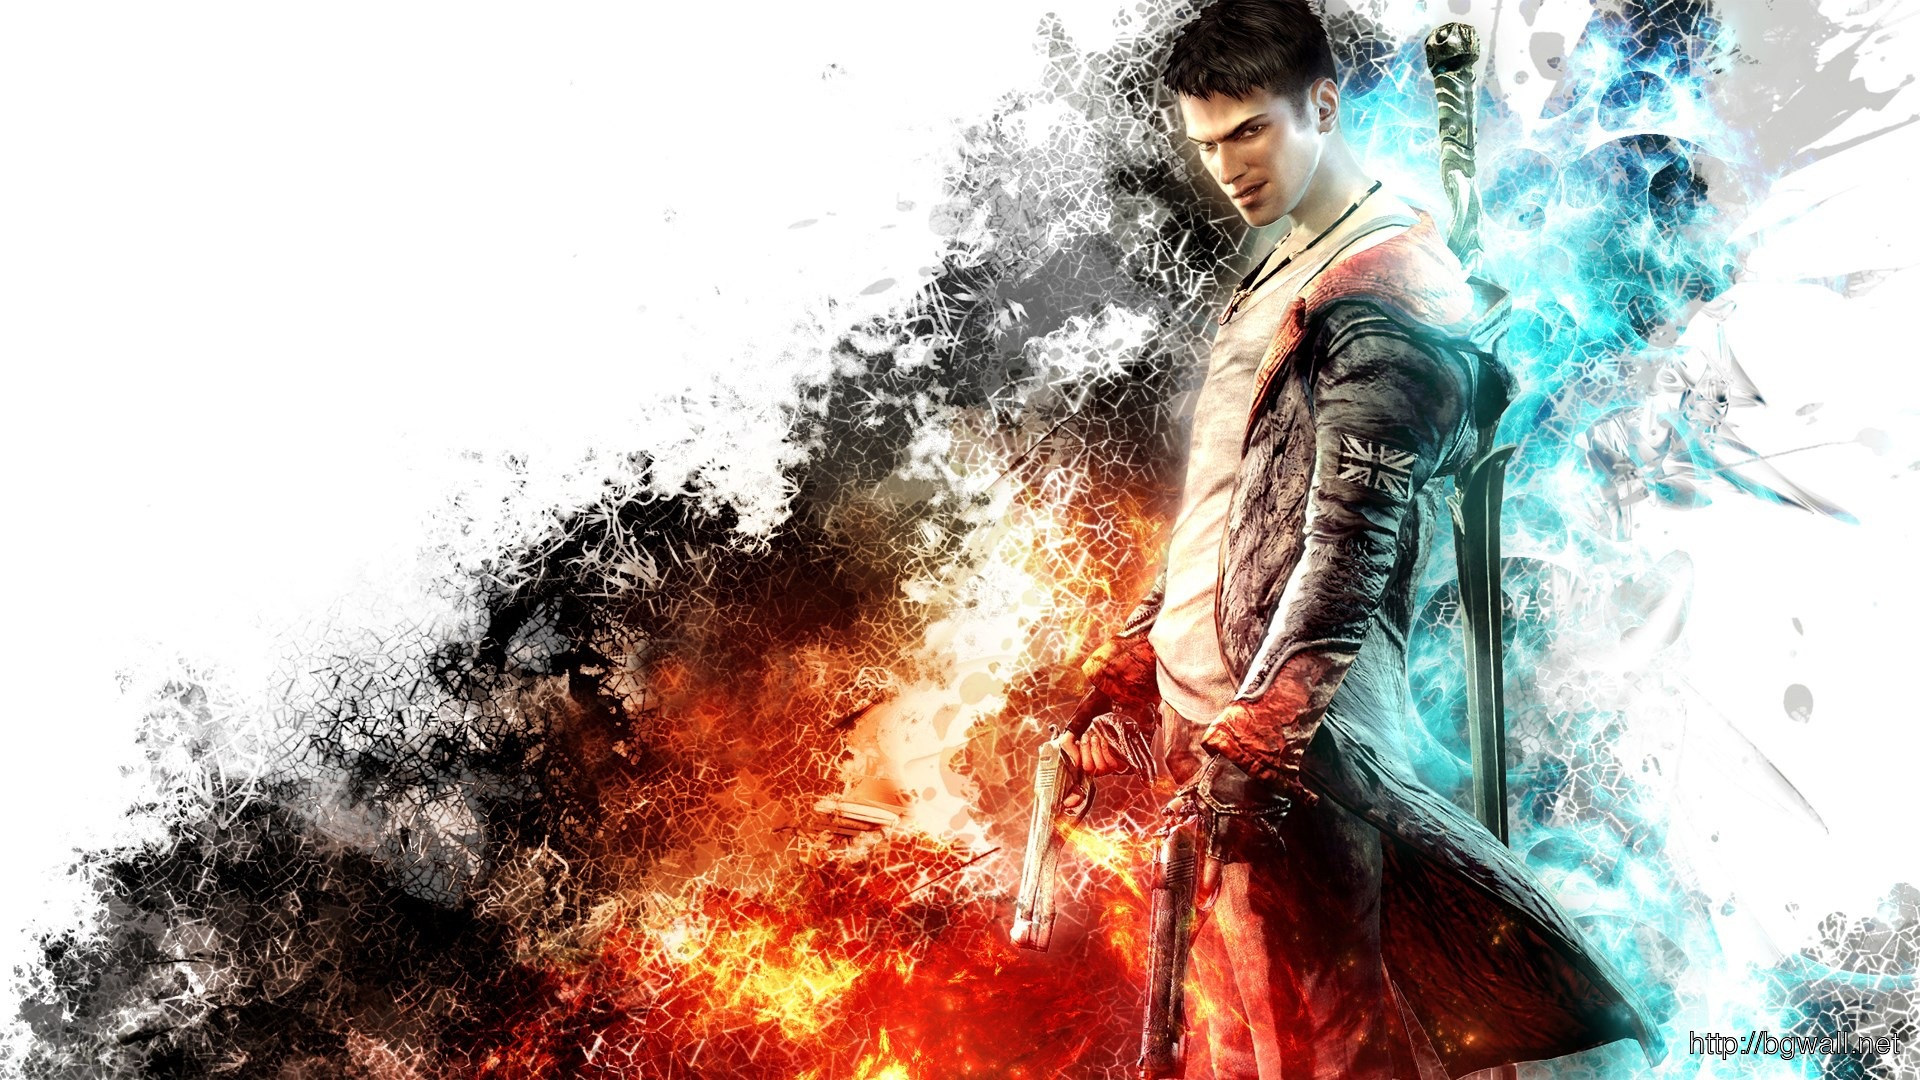 Download Devil May Cry 5 Wallpaper High Resolution Background